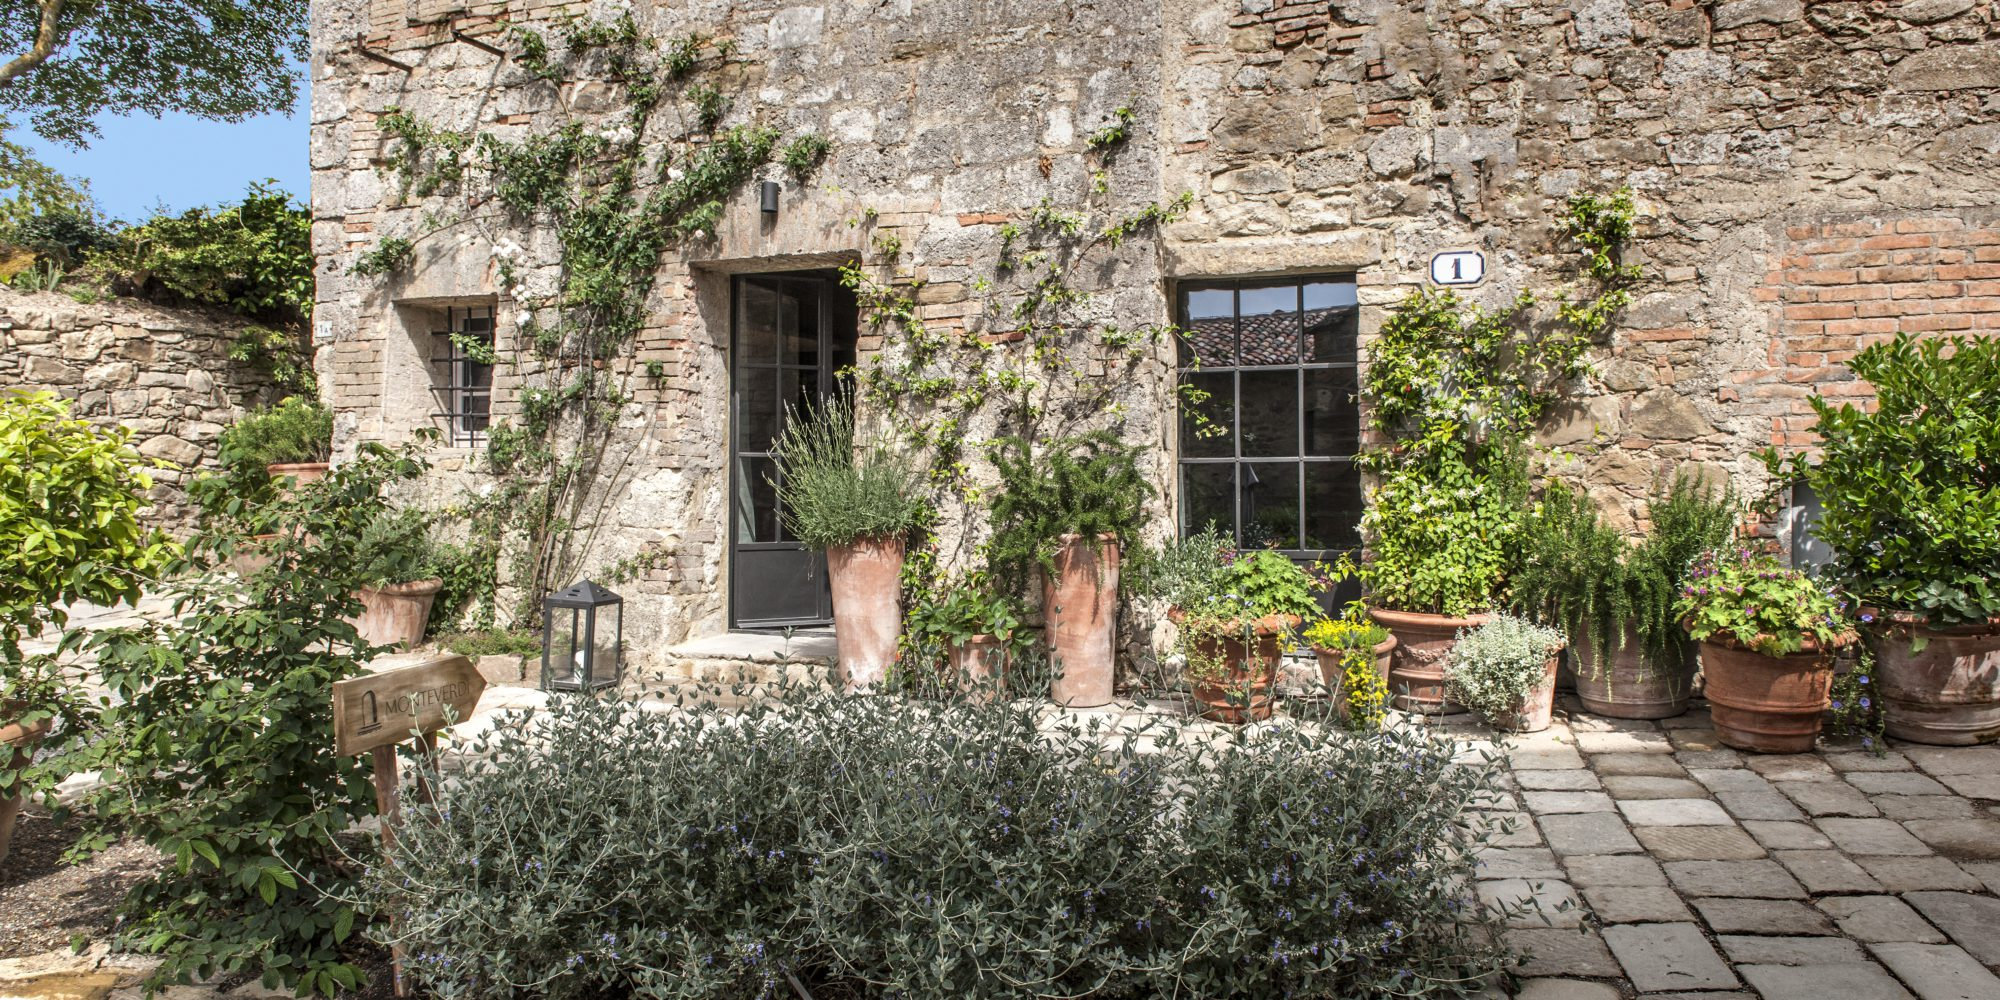 Monteverdi Tuscany will give you a warm welcome at the reception building, right at the entrance of the historic village of Castiglioncello del Trinoro.